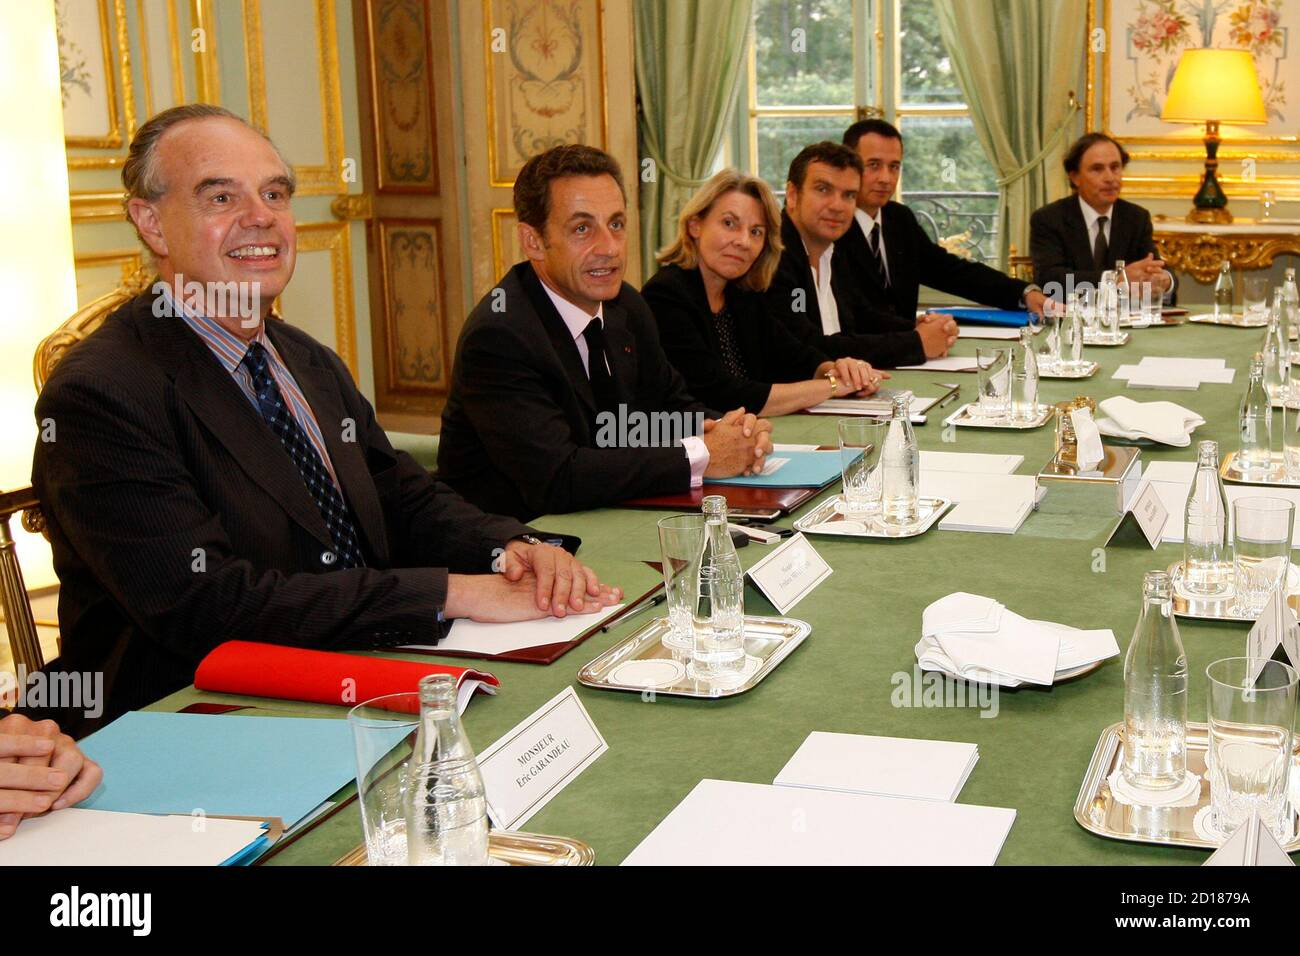 France's President Nicolas Sarkozy (2nd L) and Culture Minister Frederic Mitterrand (L) attend a meeting with the Council for Artistic Creation at the Elysee Palace in Paris September 9, 2009.   REUTERS/Benoit Tessier   (FRANCE POLITICS ENTERTAINMENT) Banque D'Images